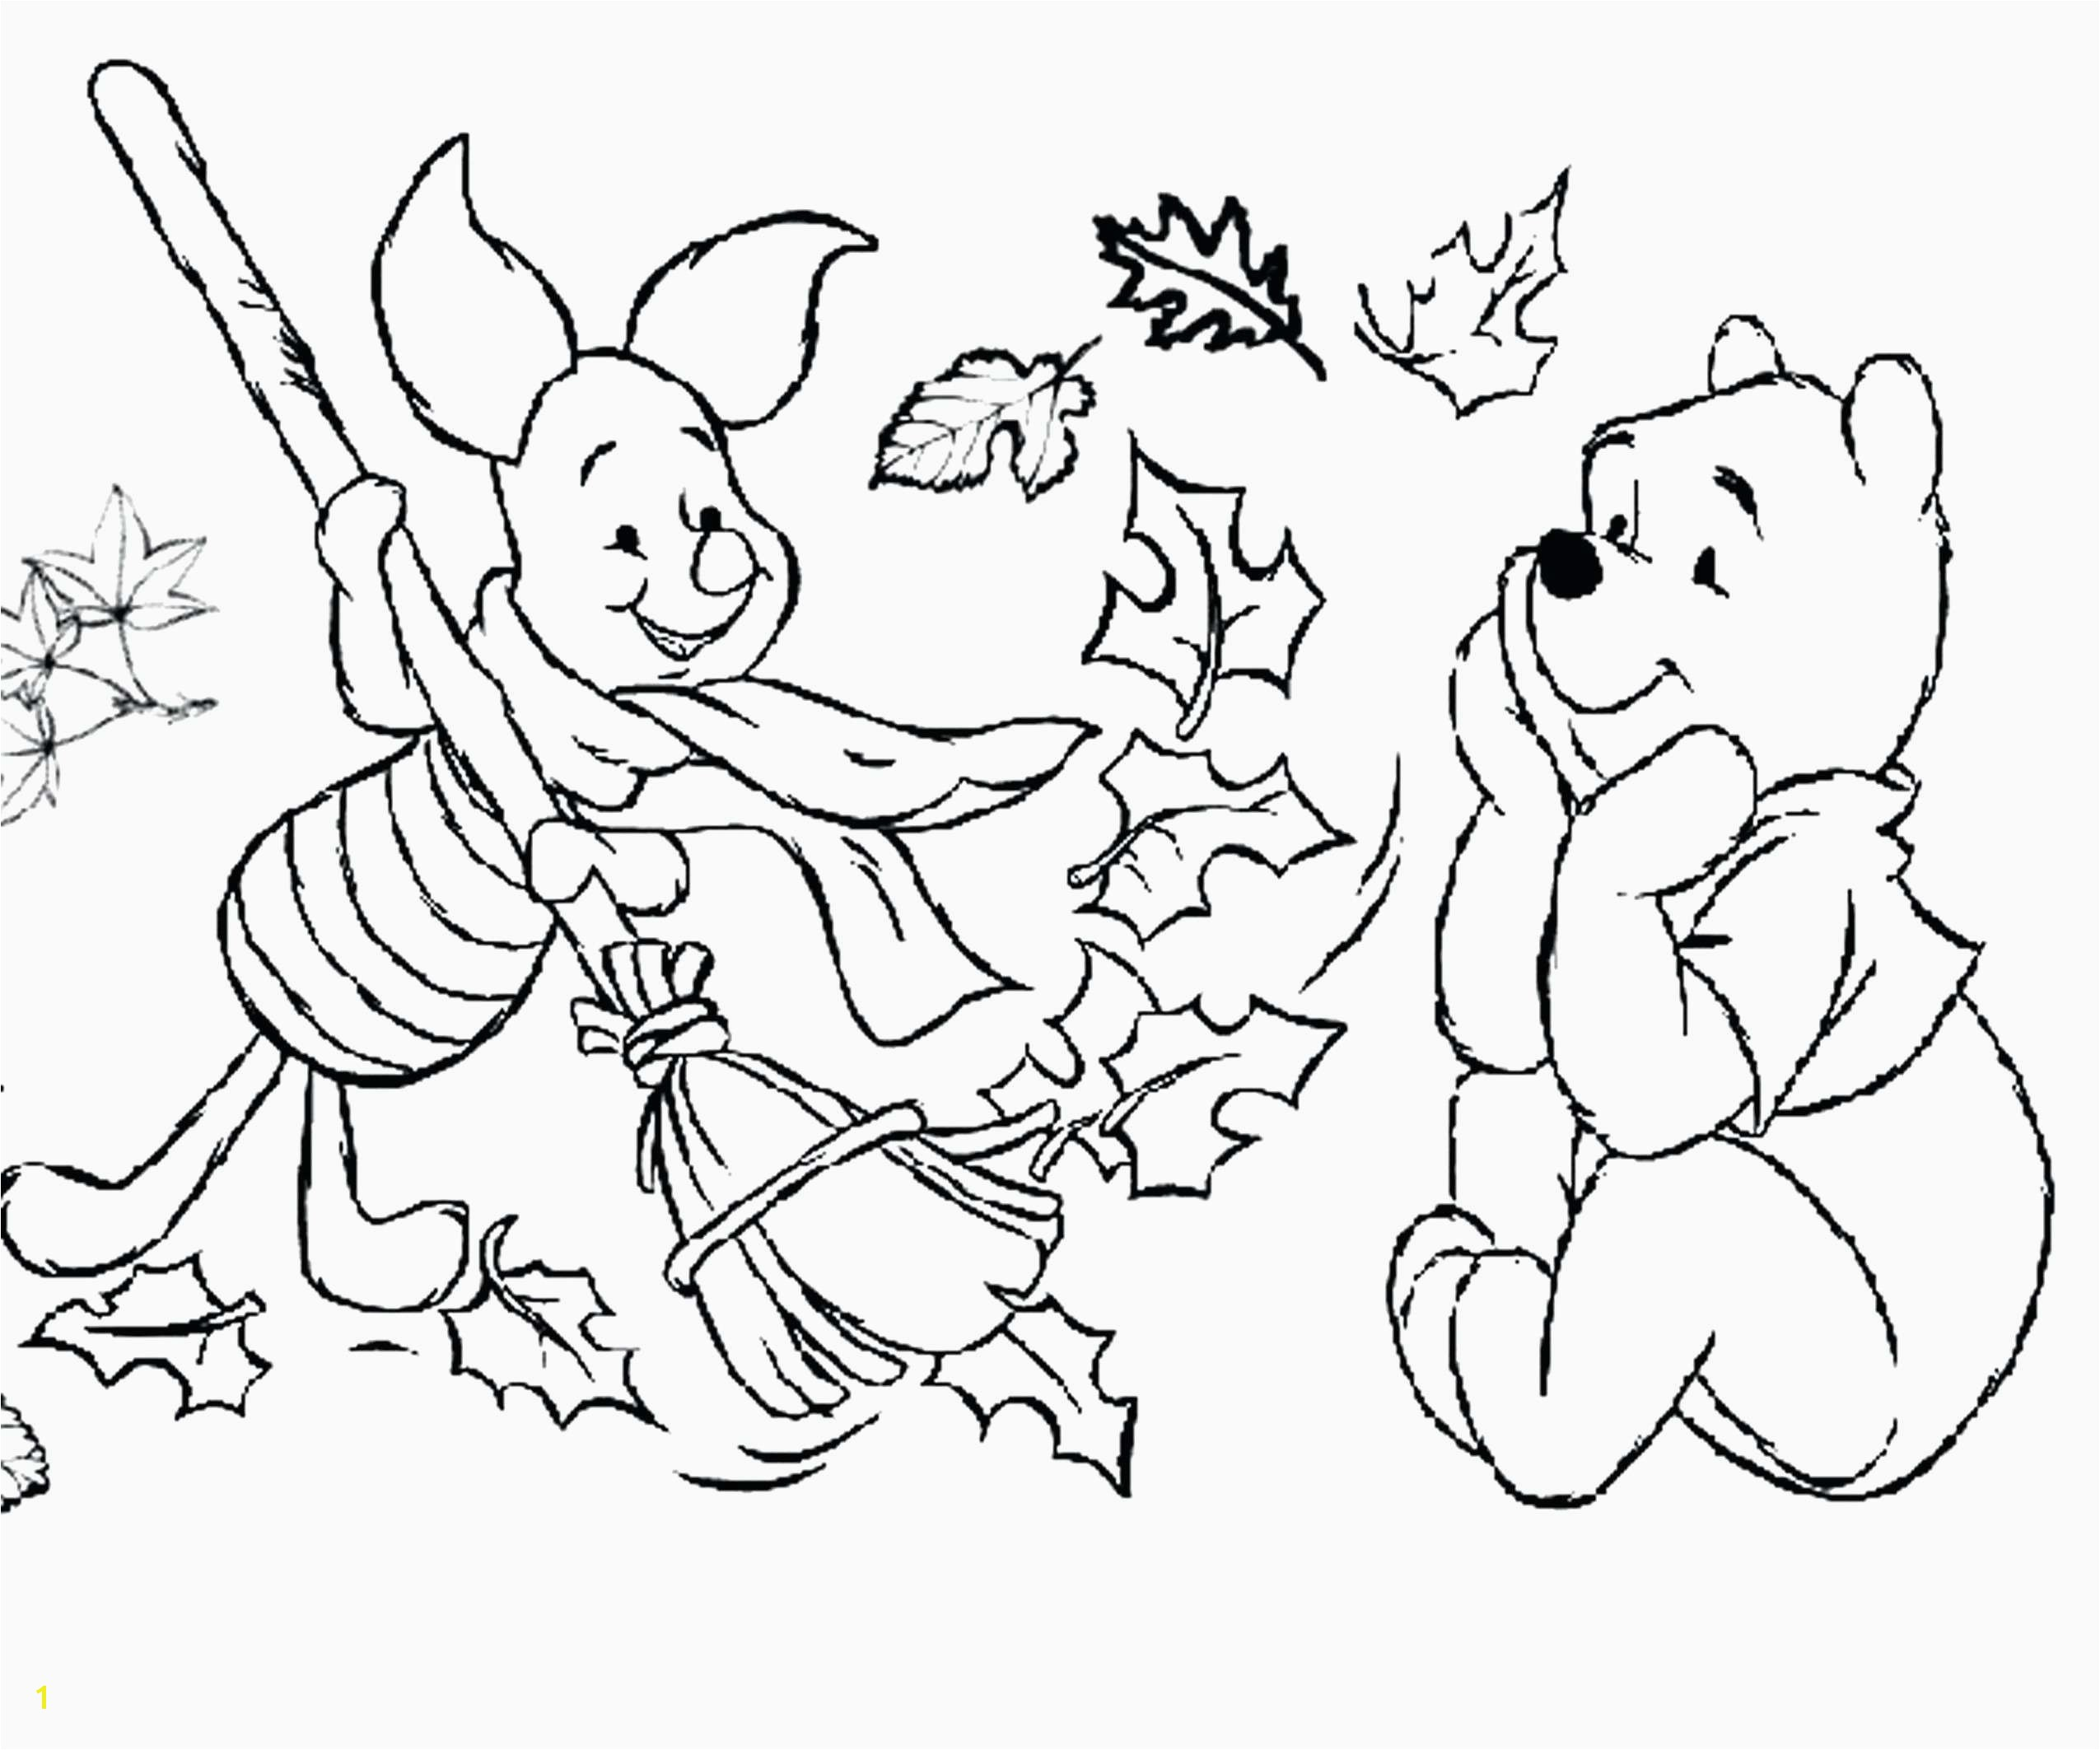 Cool Coloring Page Unique Witch Coloring Pages New Crayola Pages 0d Girl Angry Birds Coloring